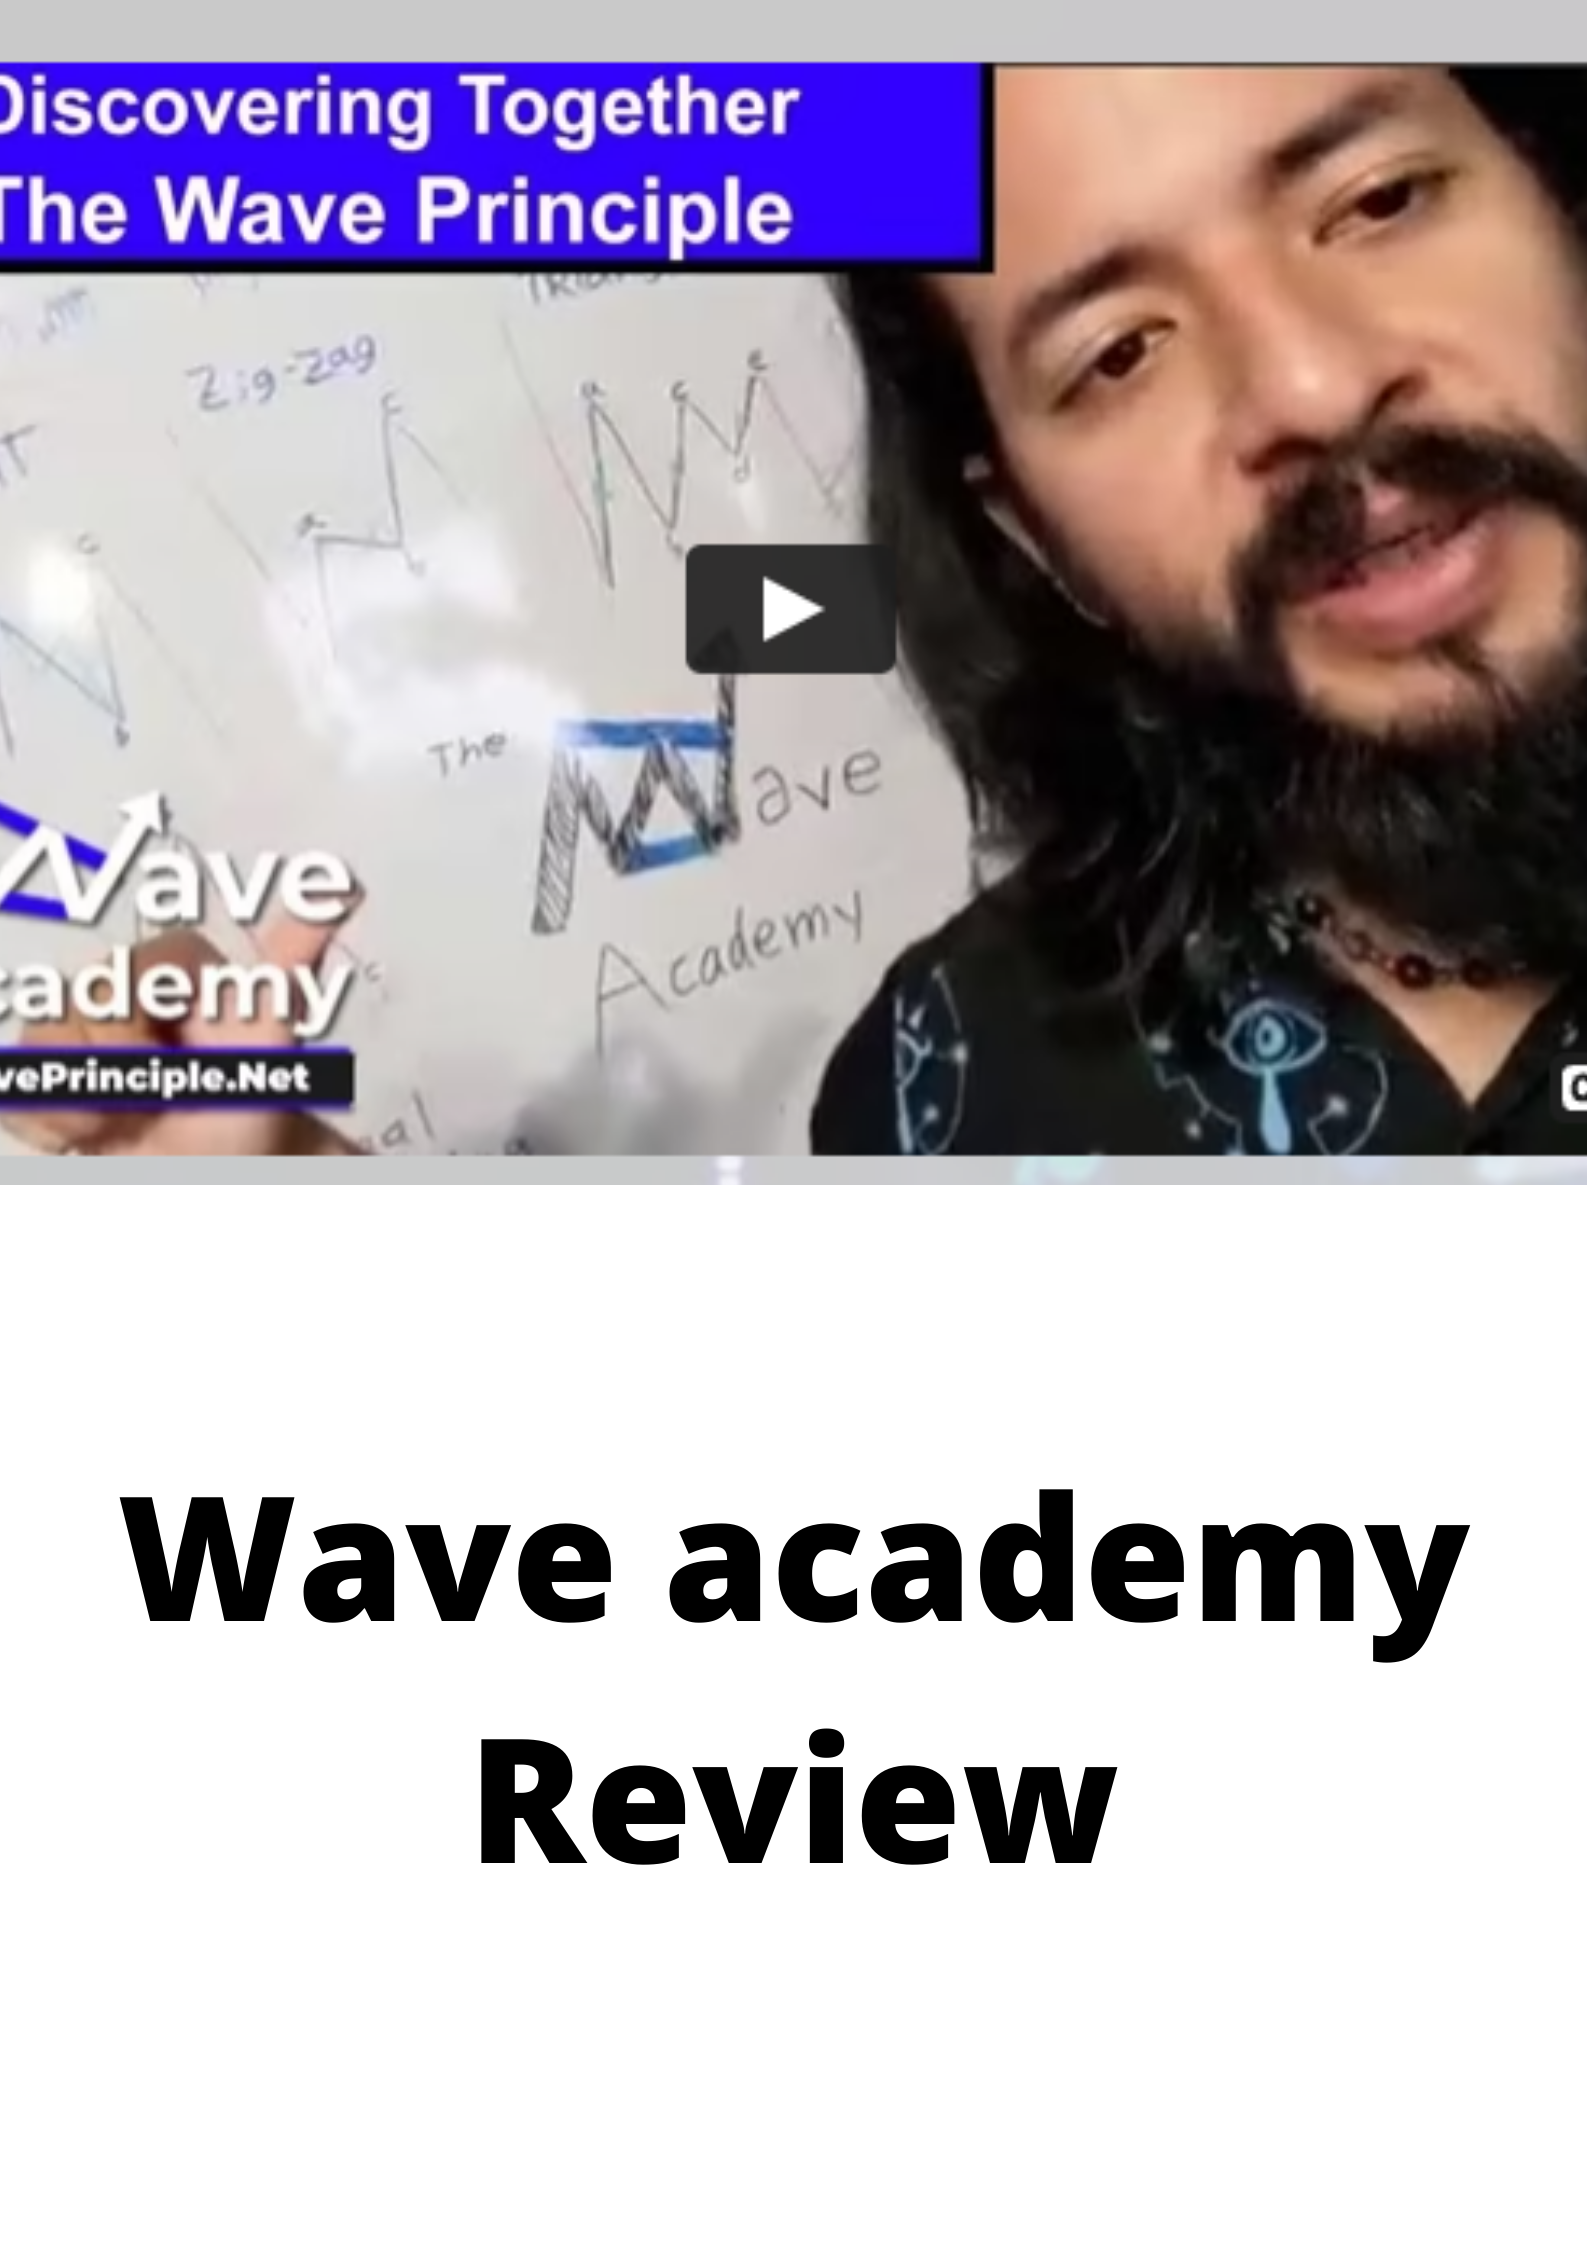 The wave academy Review